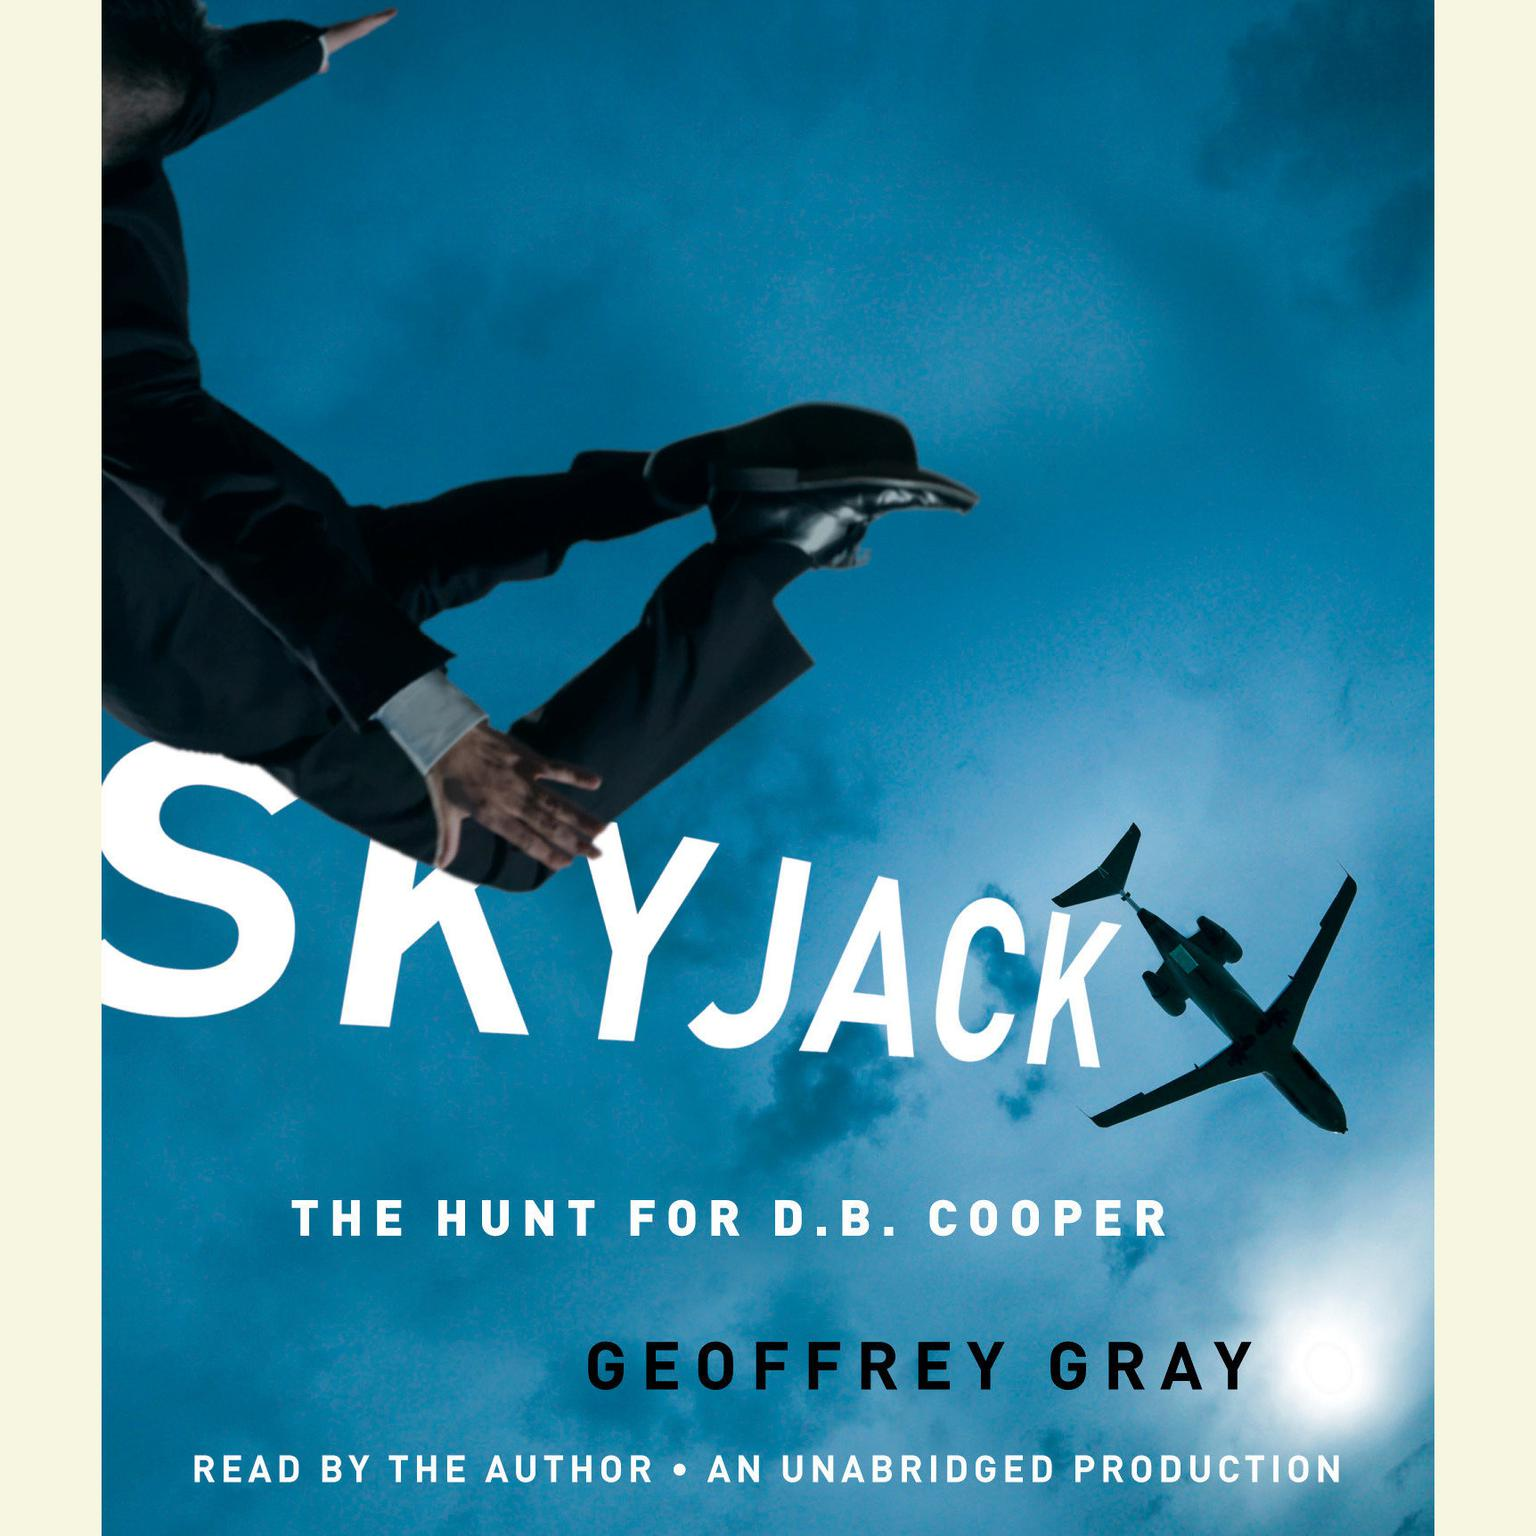 Printable SKYJACK: The Hunt for D. B. Cooper Audiobook Cover Art